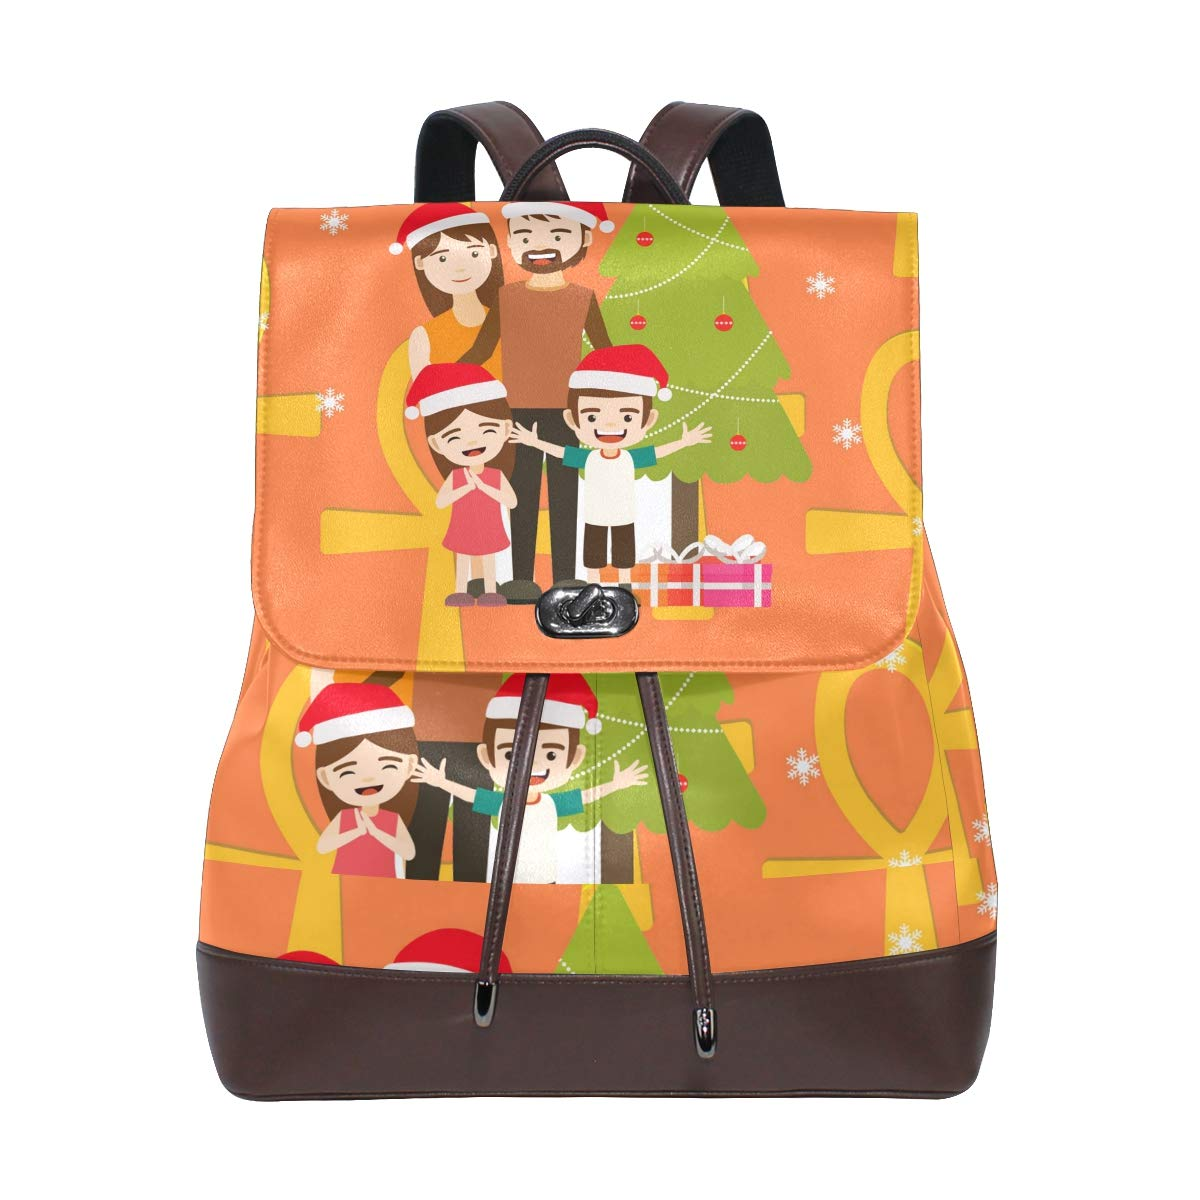 PU Leather Shoulder Bag,Christmas Family Backpack,Portable Travel School Rucksack,Satchel with Top Handle